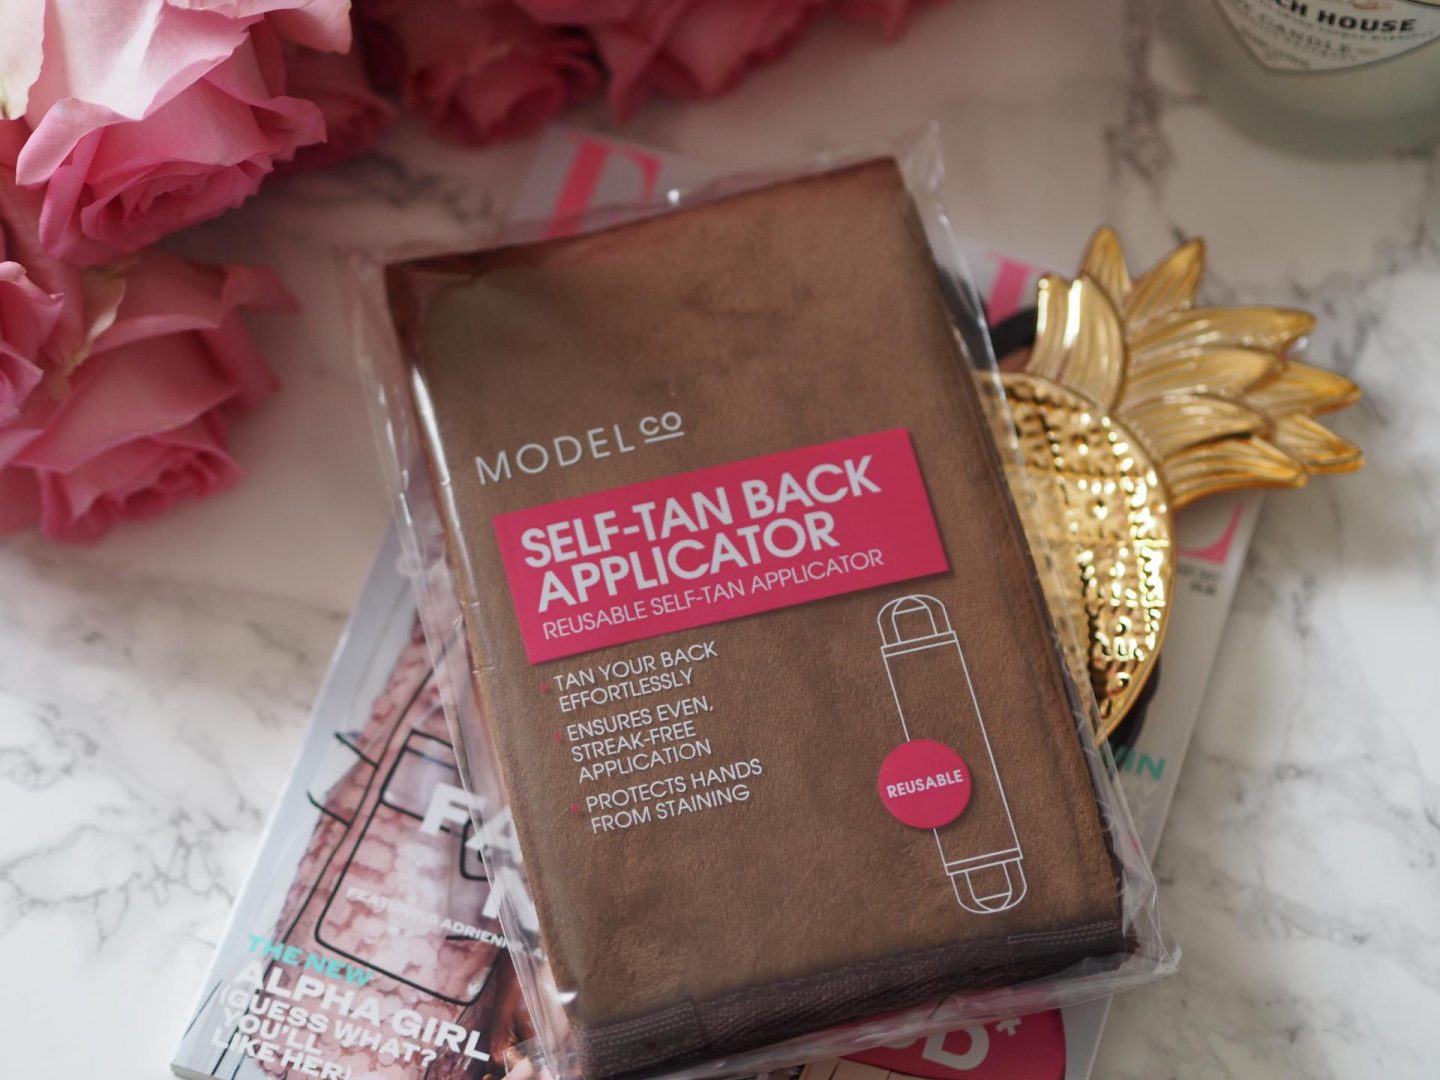 Lookfantastic Beauty Haul - Product SELF-TAN BACK APPLICATOR